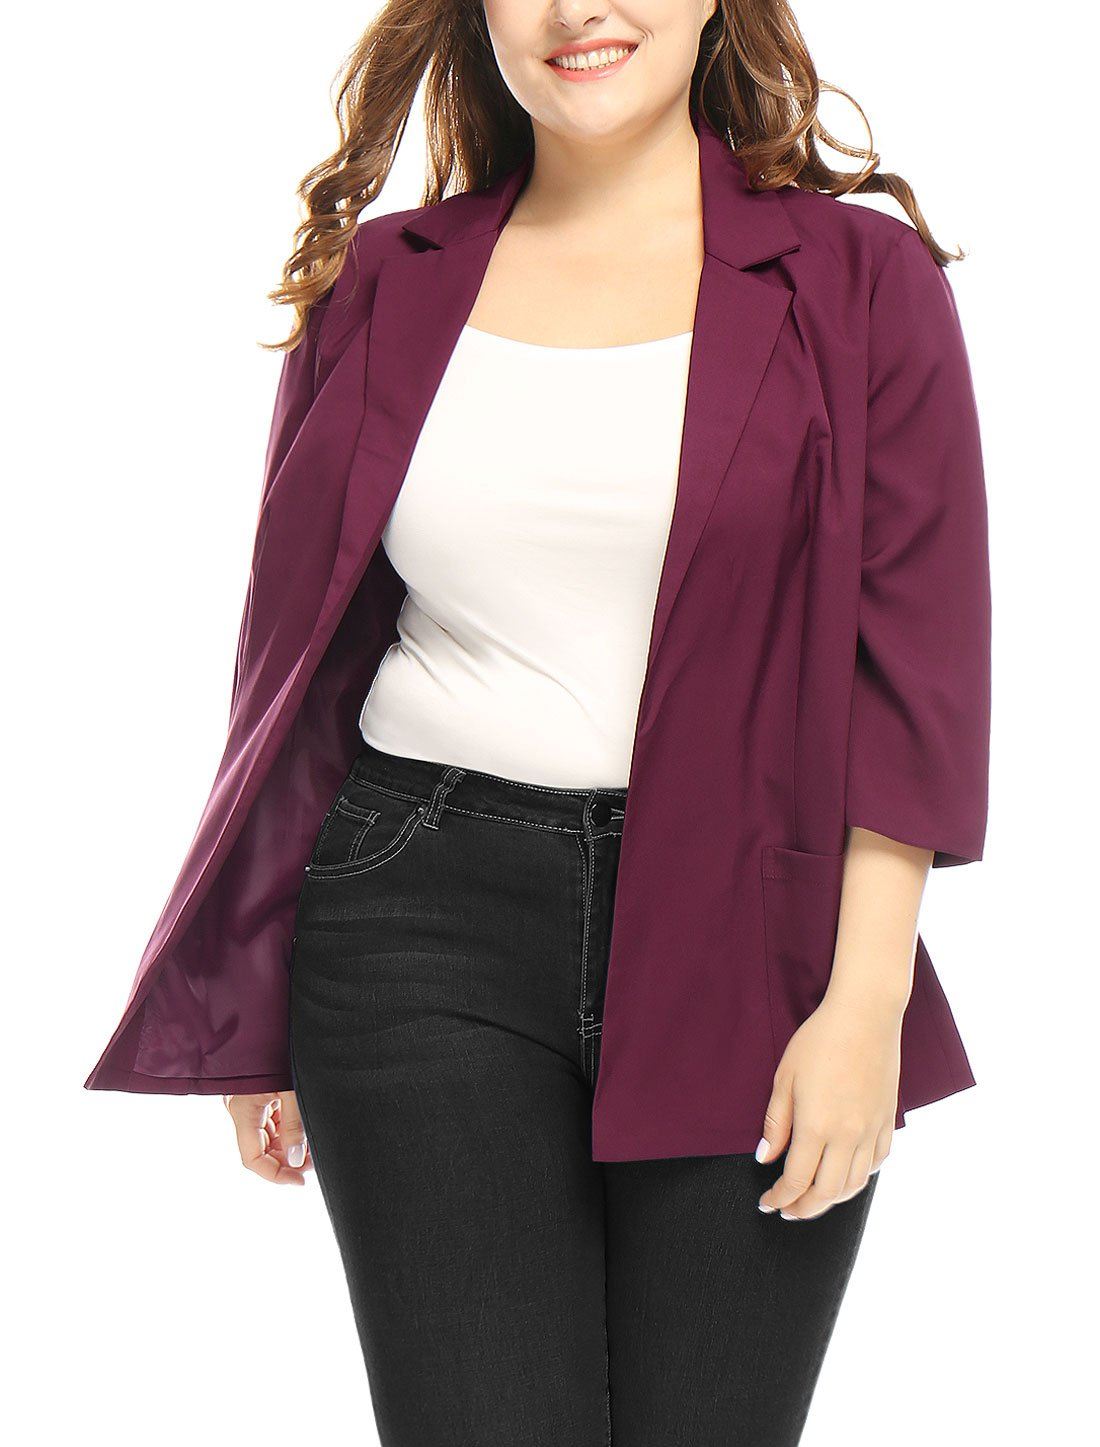 Agnes Orinda Women's Plus Size Open Front 3/4 Sleeves Collared Blazer 1X Red